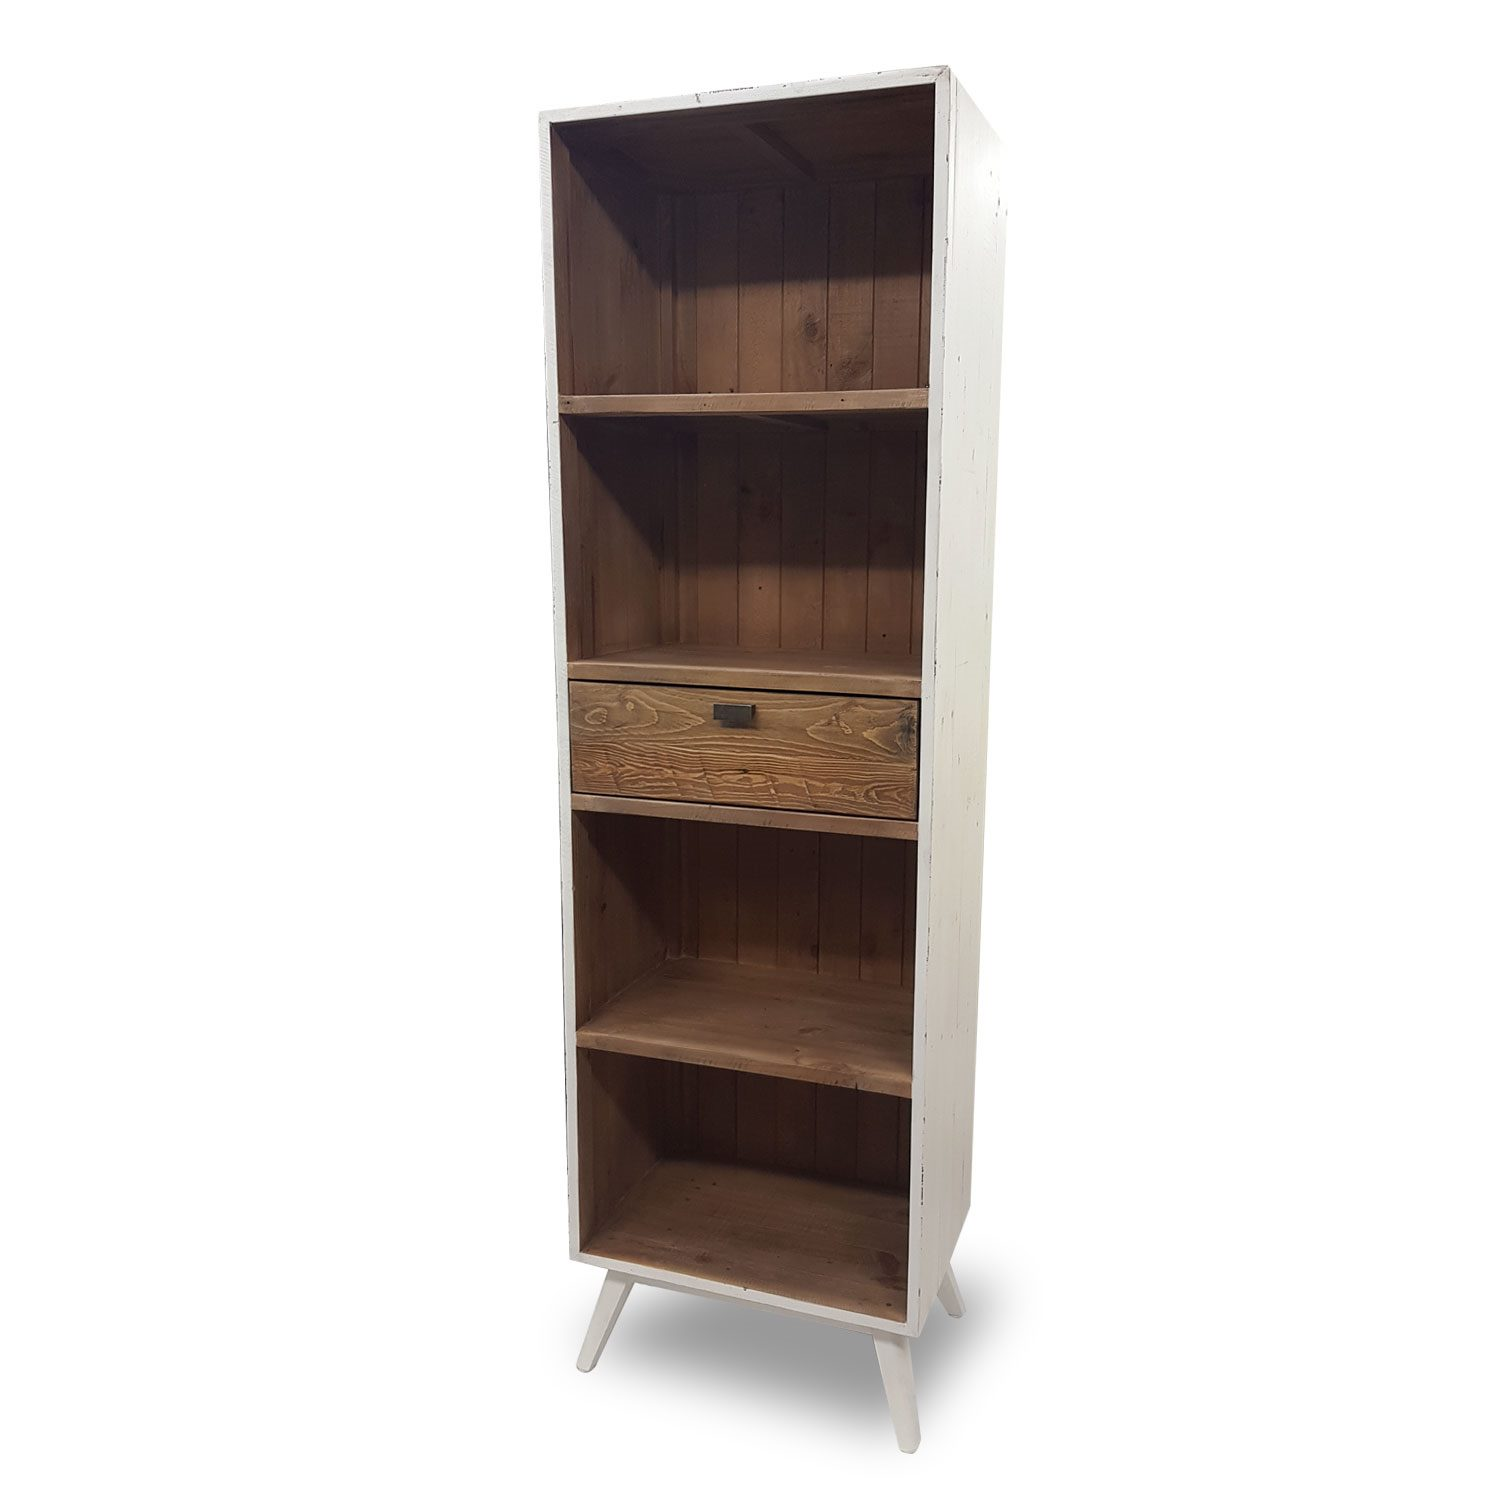 Rustic Wooden Bookcase Display Unit Brooklyn Collection